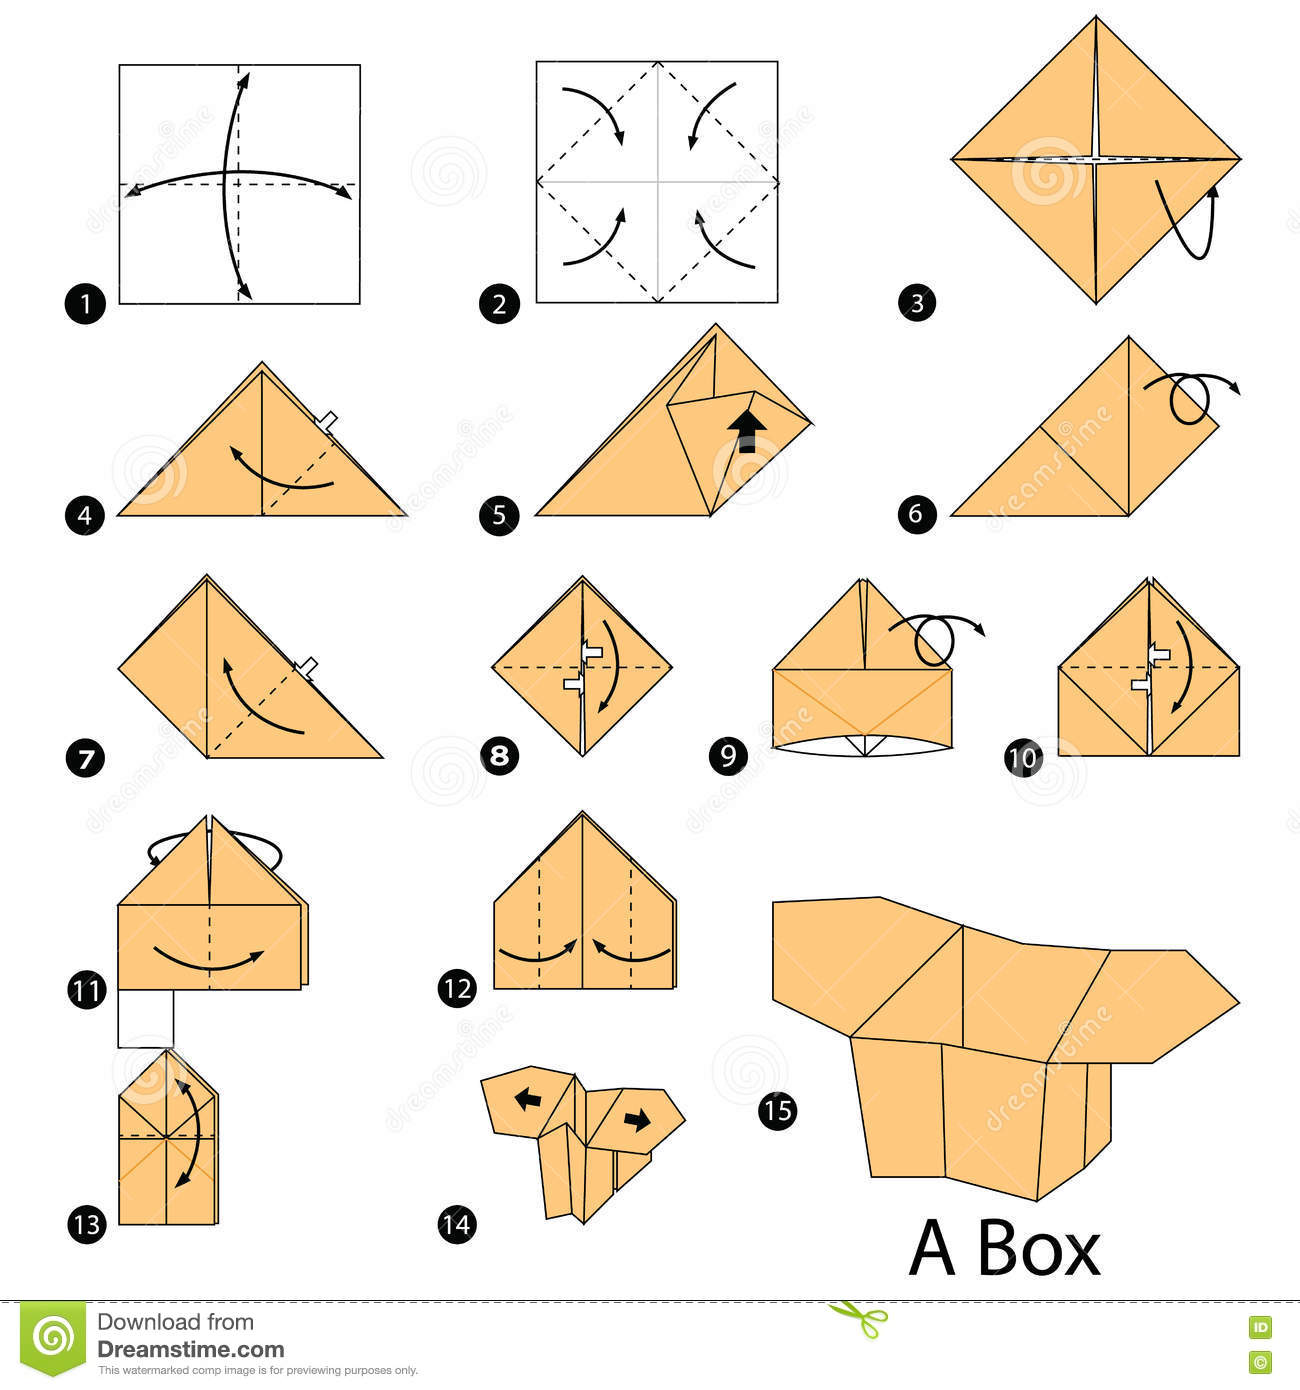 Step by step instructions how to make origami a box illustration step by step instructions how to make origami a box jeuxipadfo Images